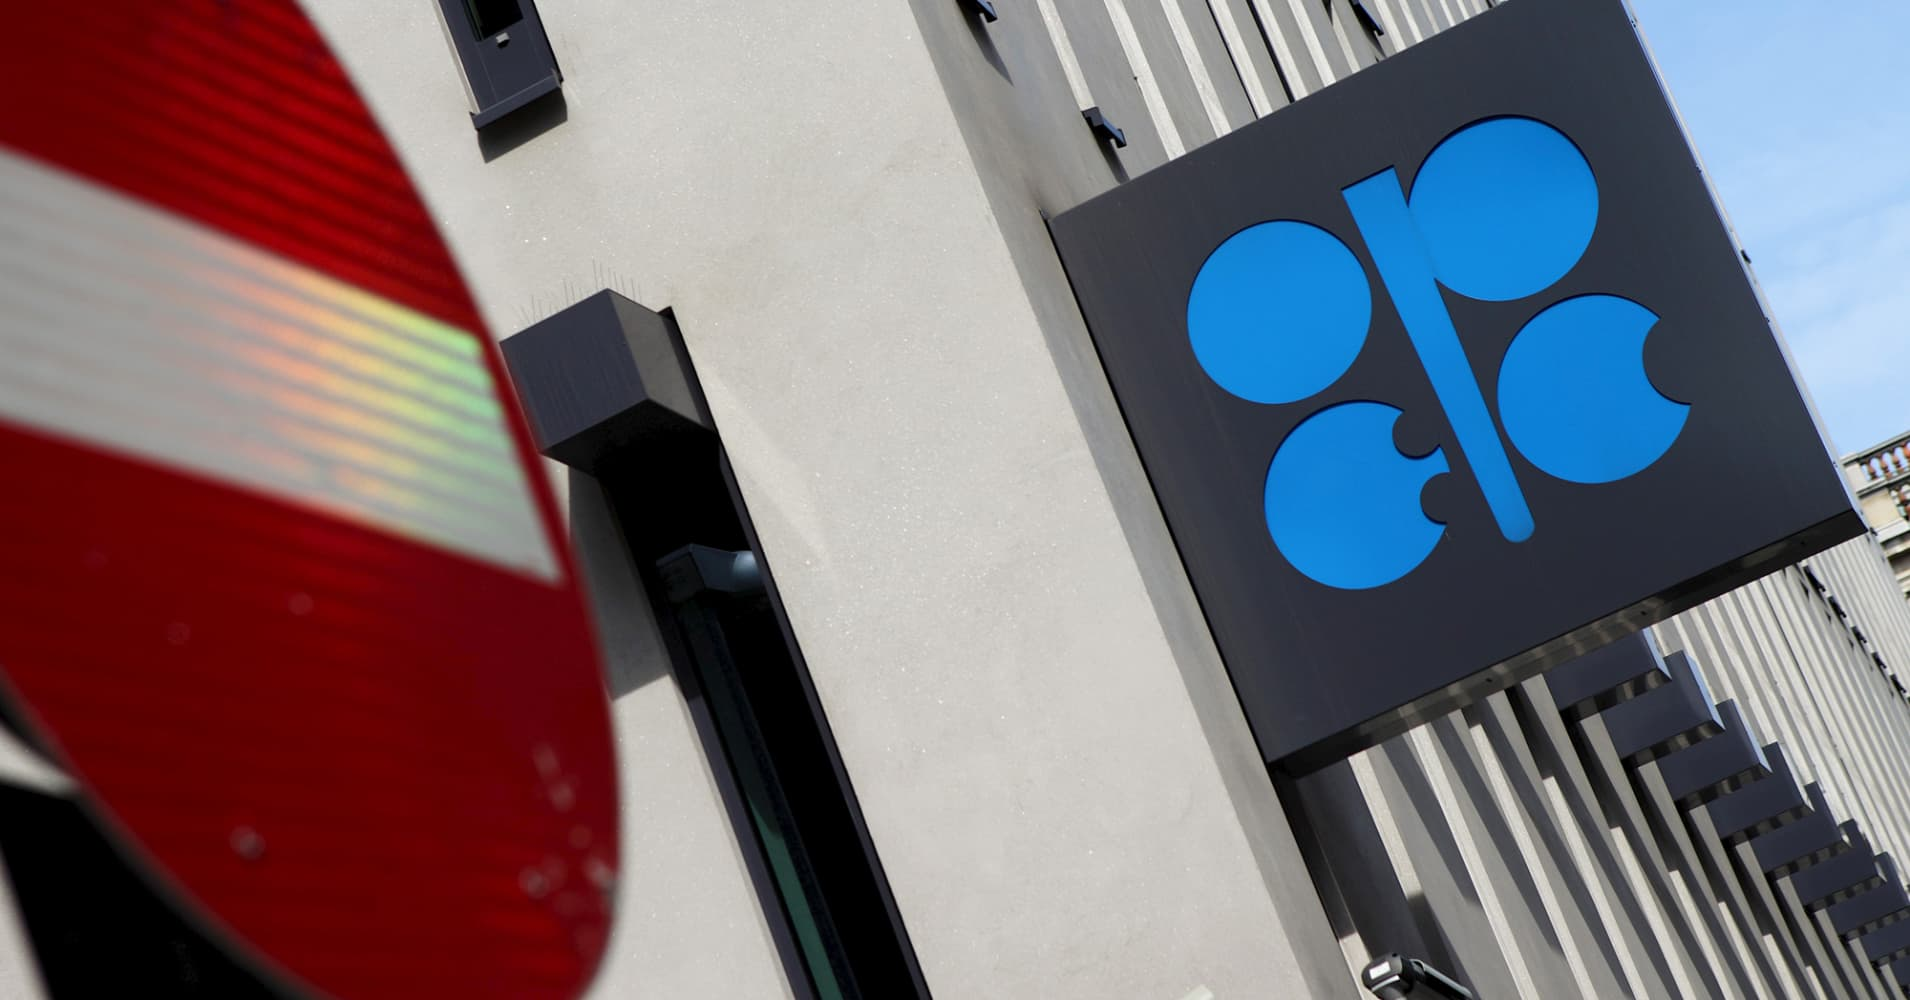 China is downside risk for oil prices as OPEC meets: Analysts